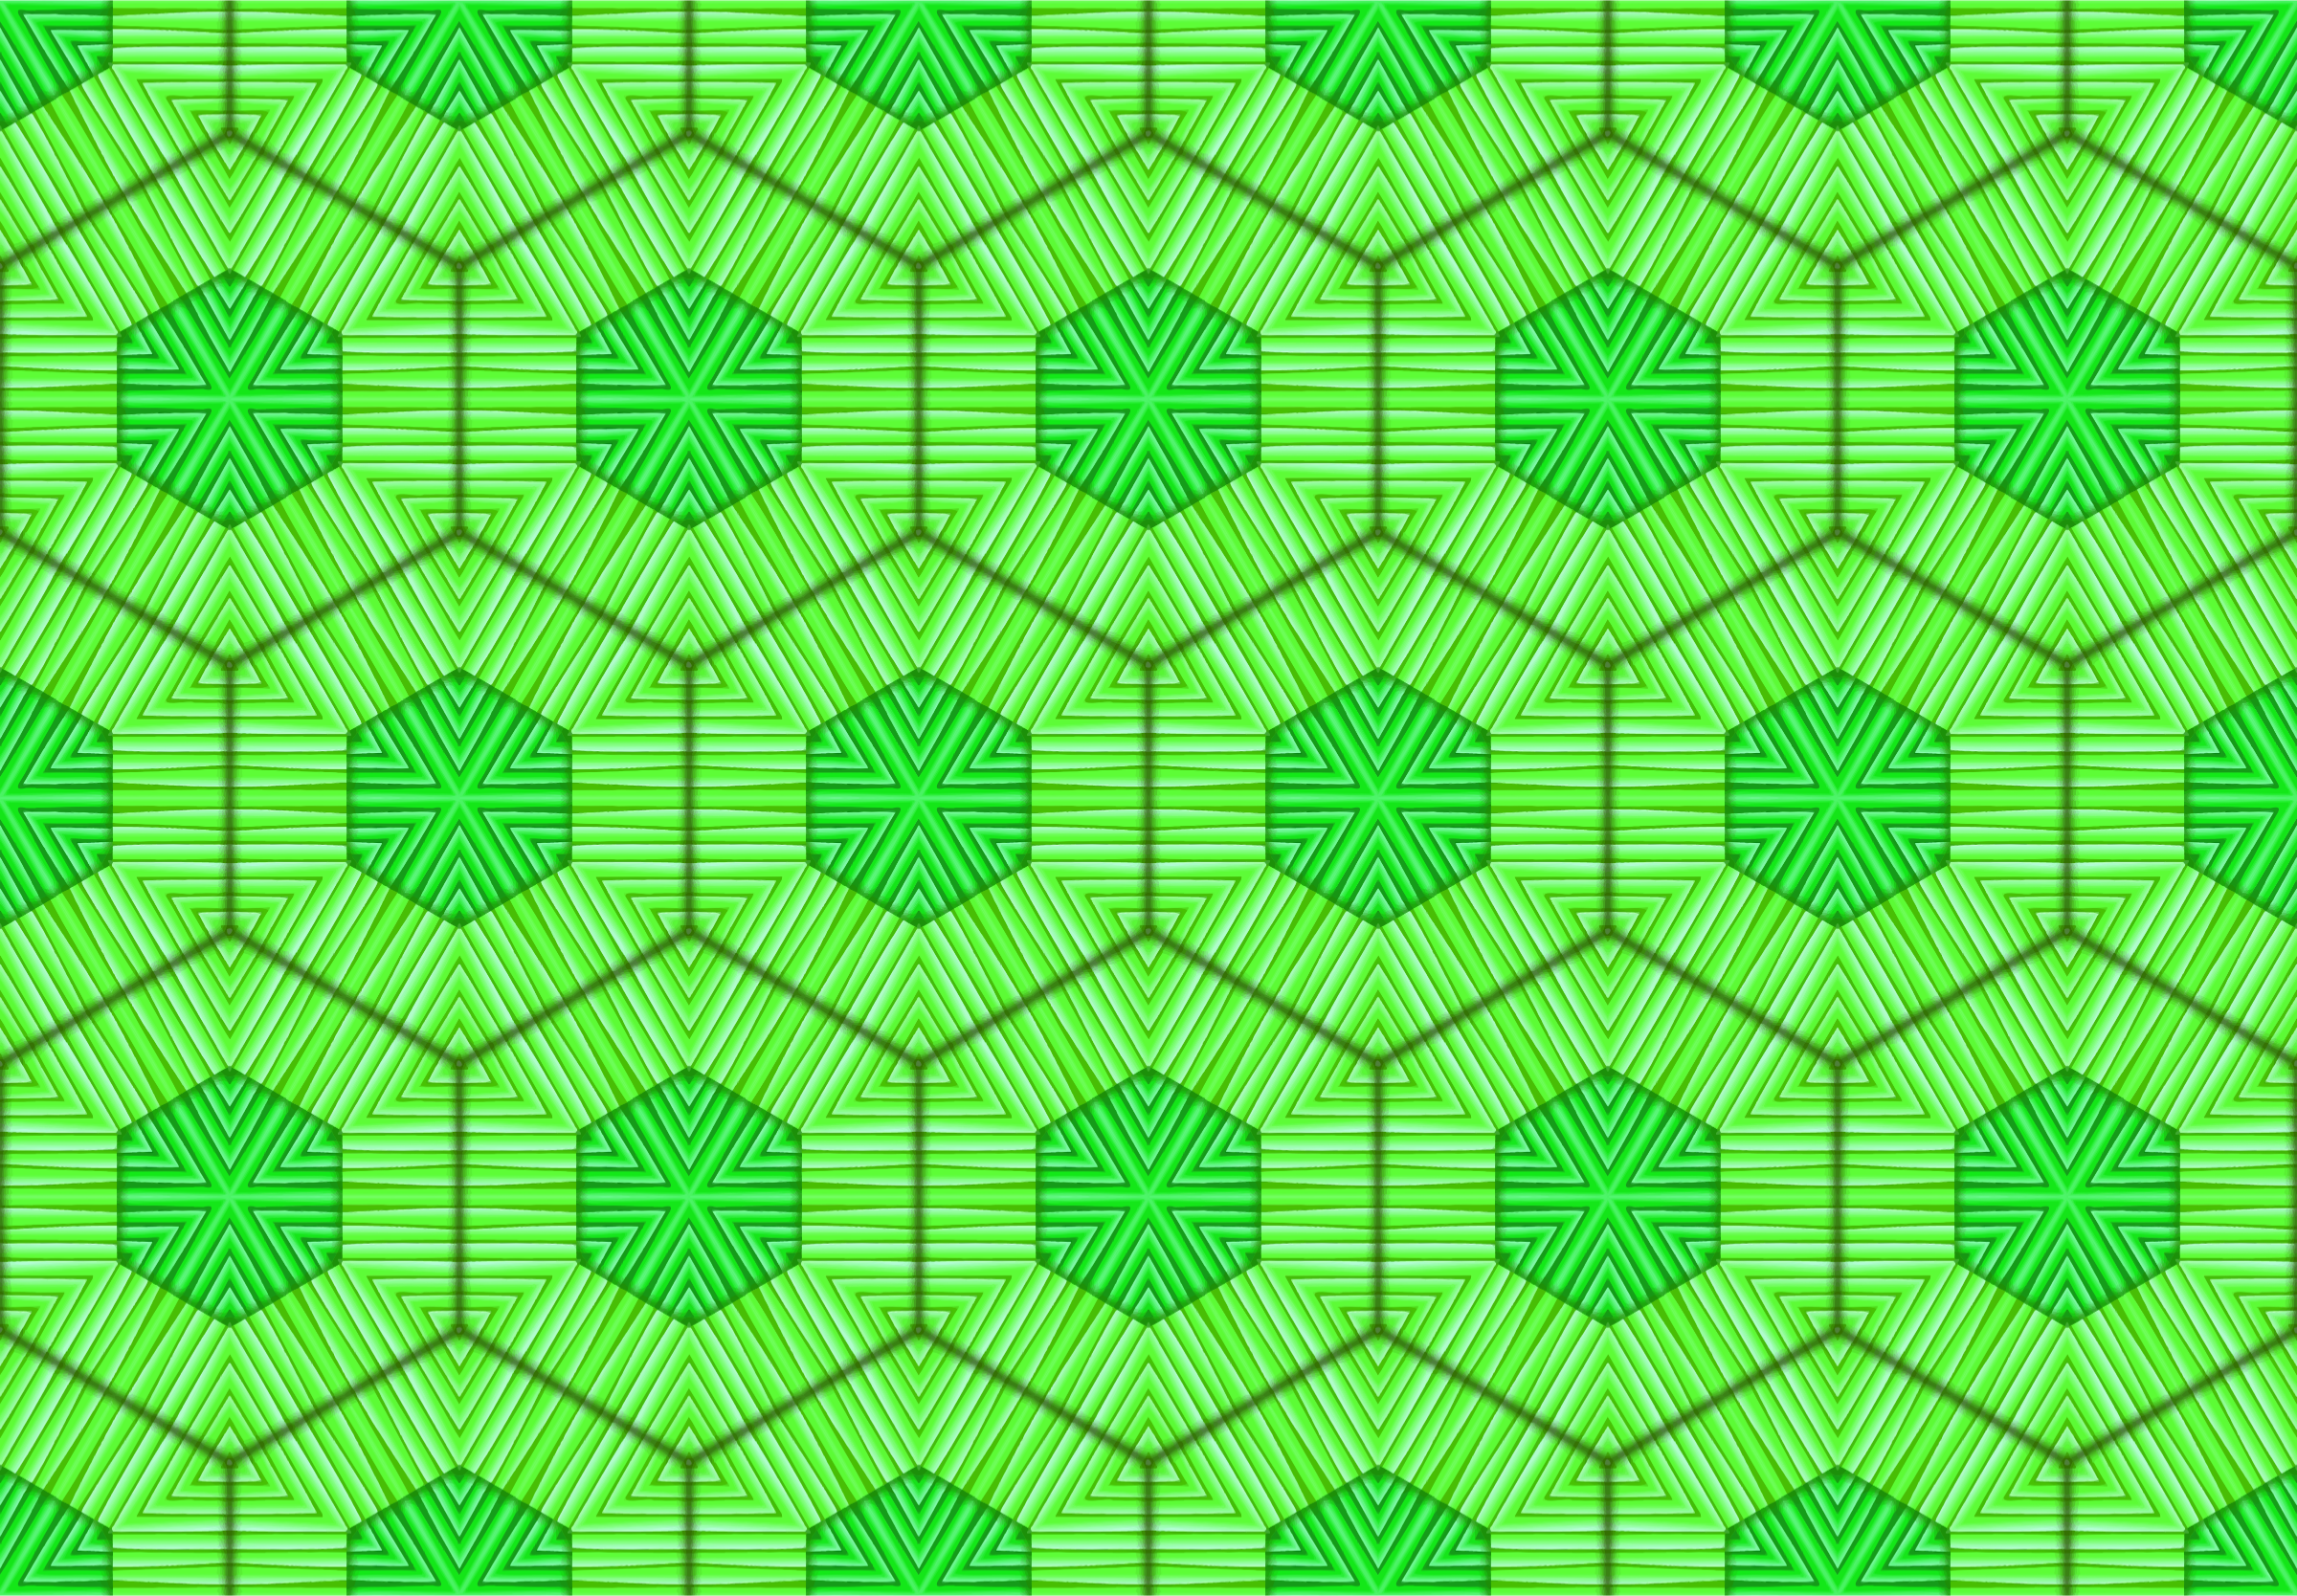 Background pattern 246 (colour 2) by Firkin